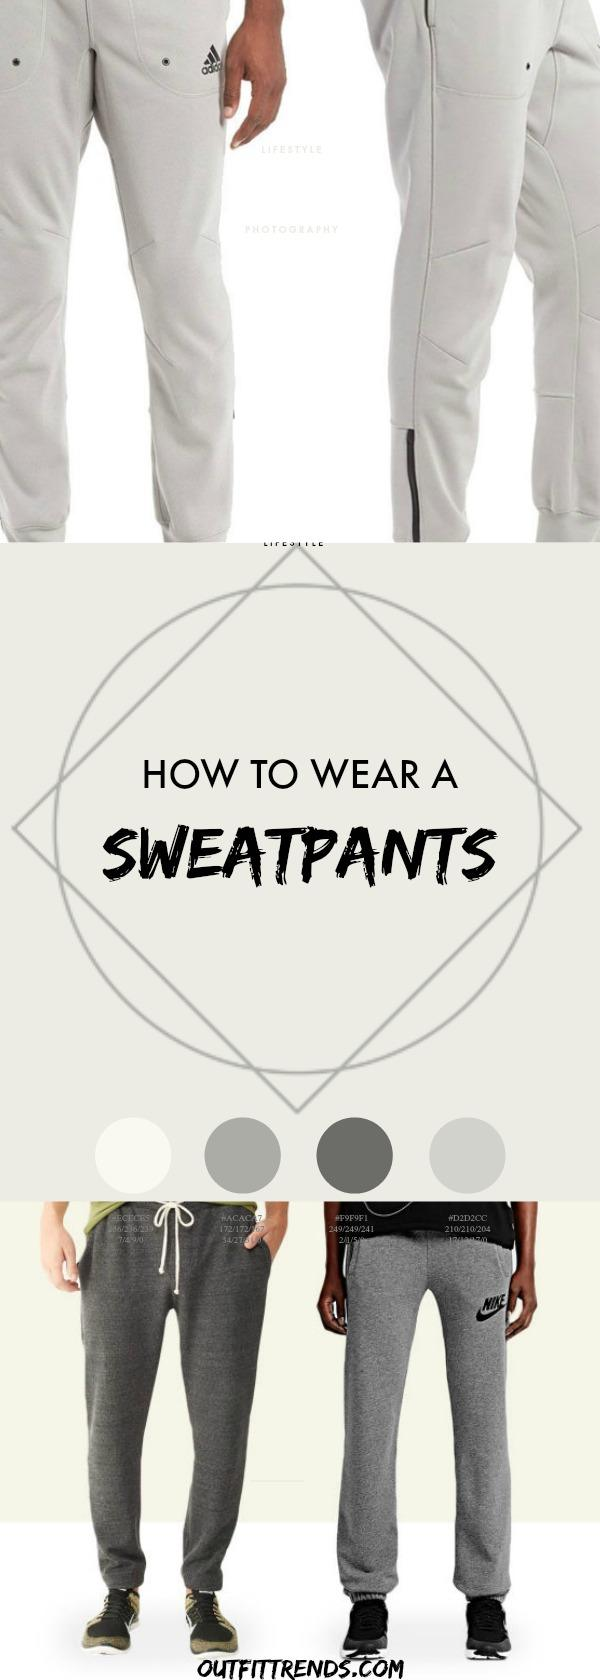 Circled-And-Squared Men Sweatpants Outfits - 20 Cool Ideas on How to Wear Sweatpants